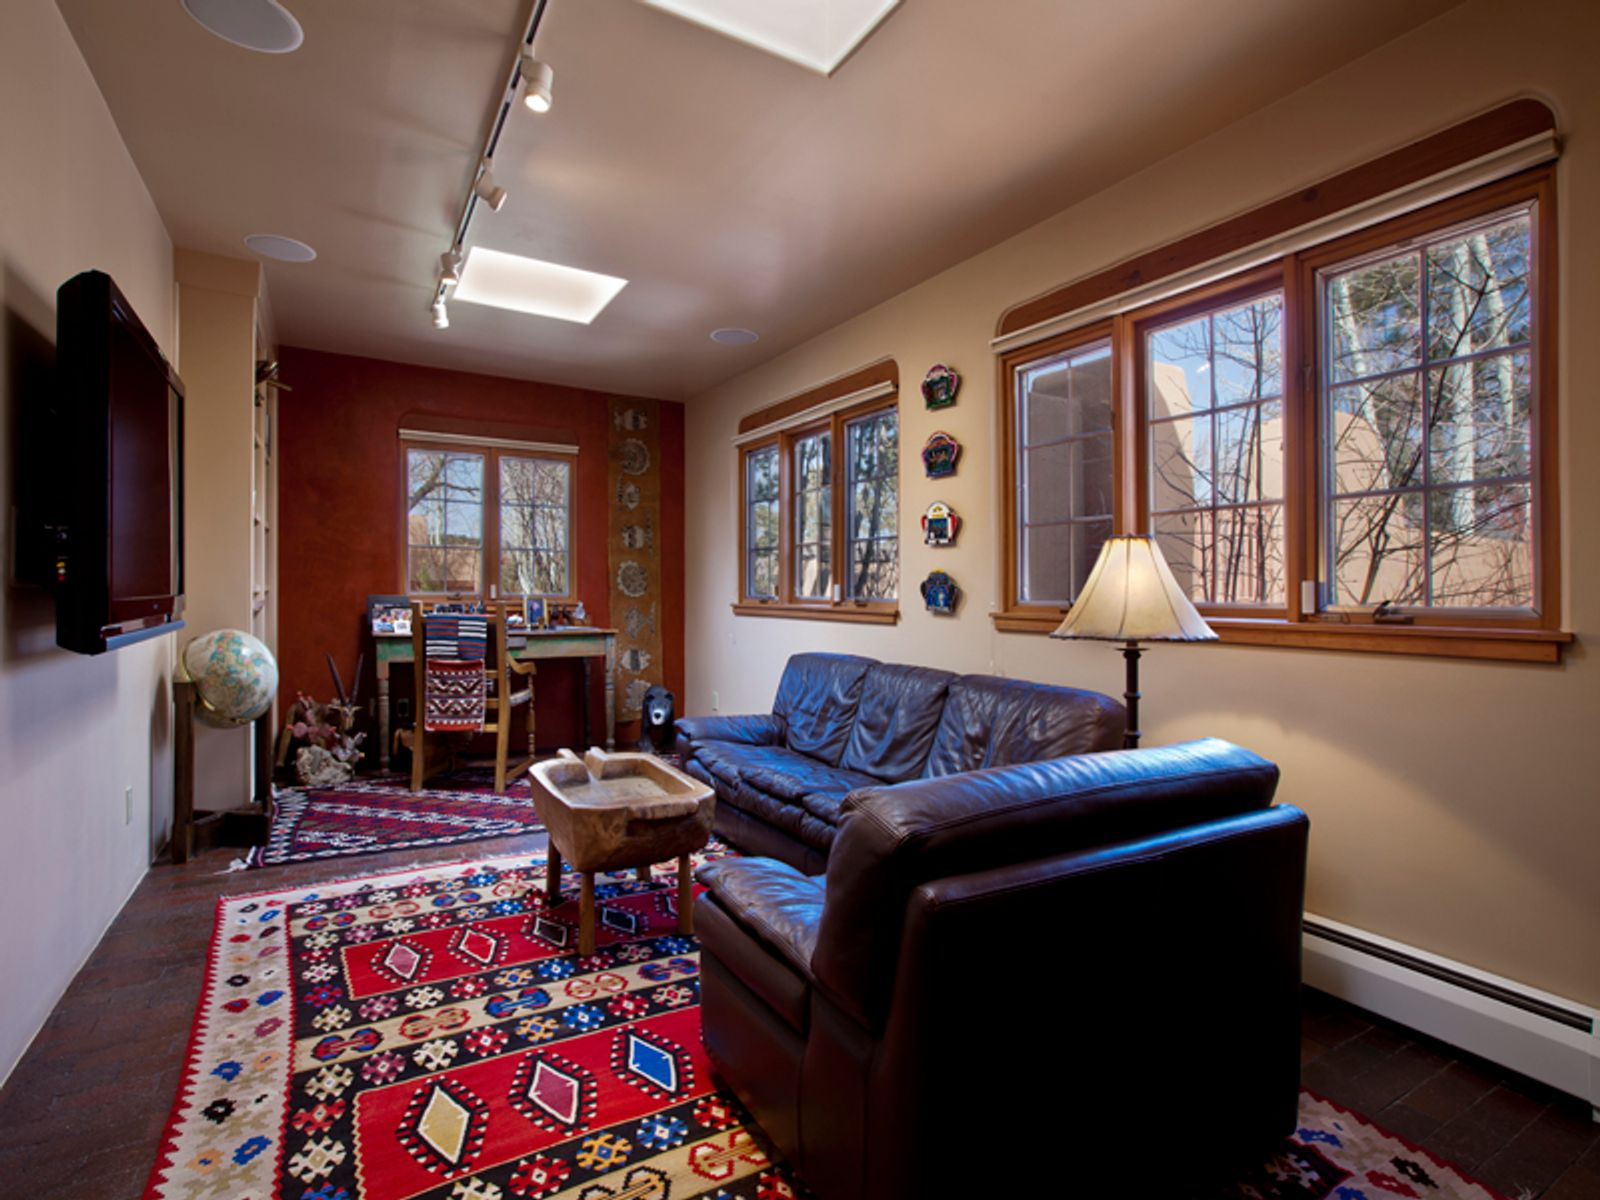 1223 La Rambla, Santa Fe NM Condominium - Santa Fe Real Estate